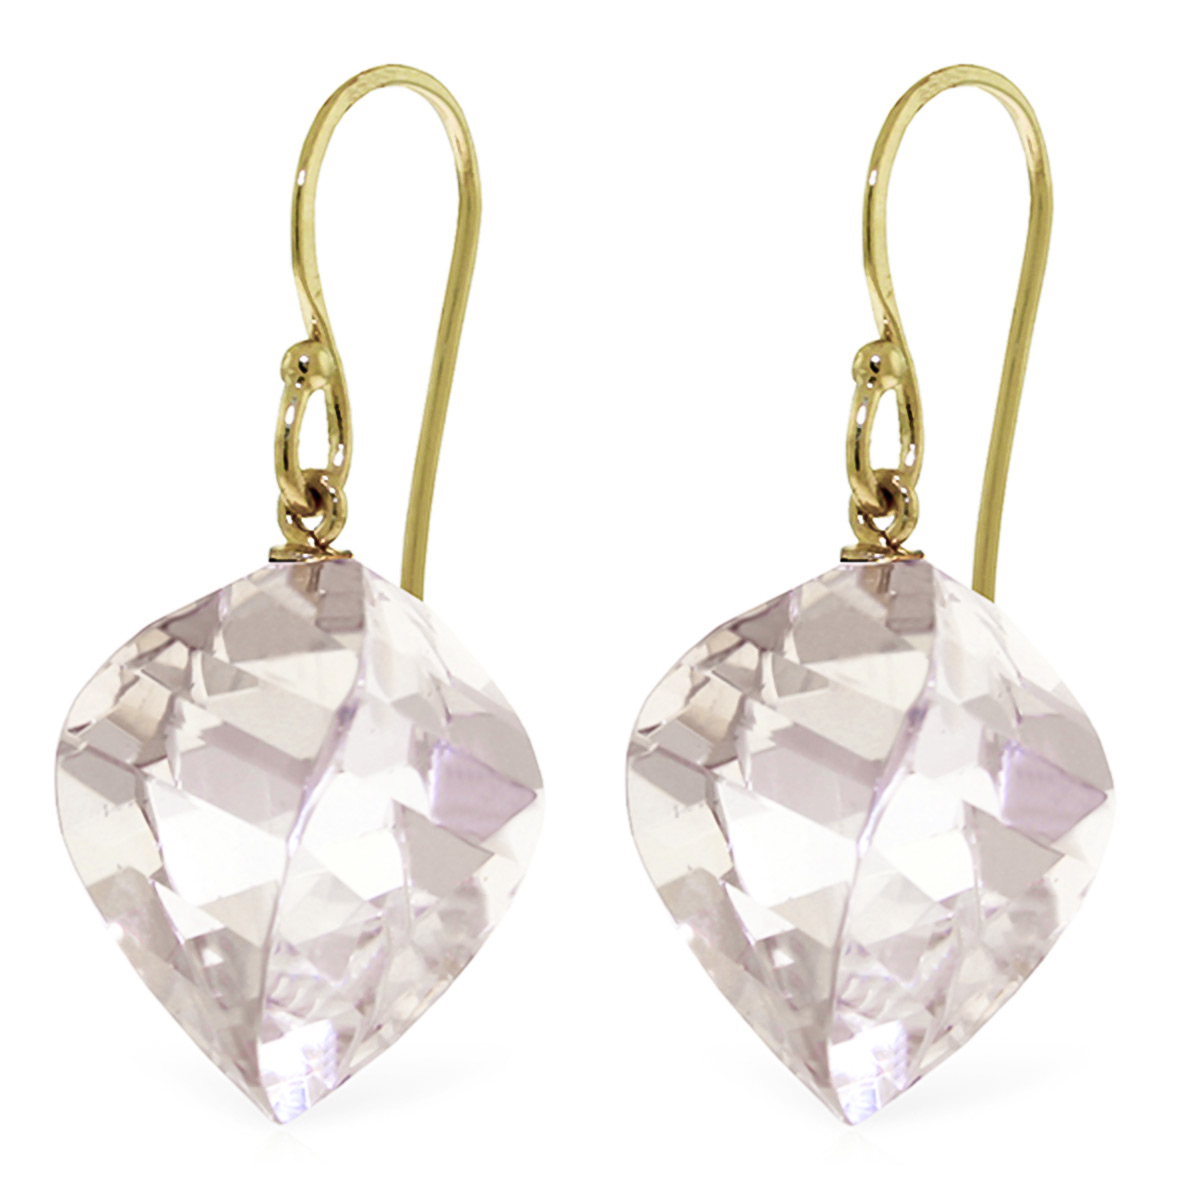 White Topaz Spiral Briolette Drop Earrings 25.6ctw in 9ct Gold